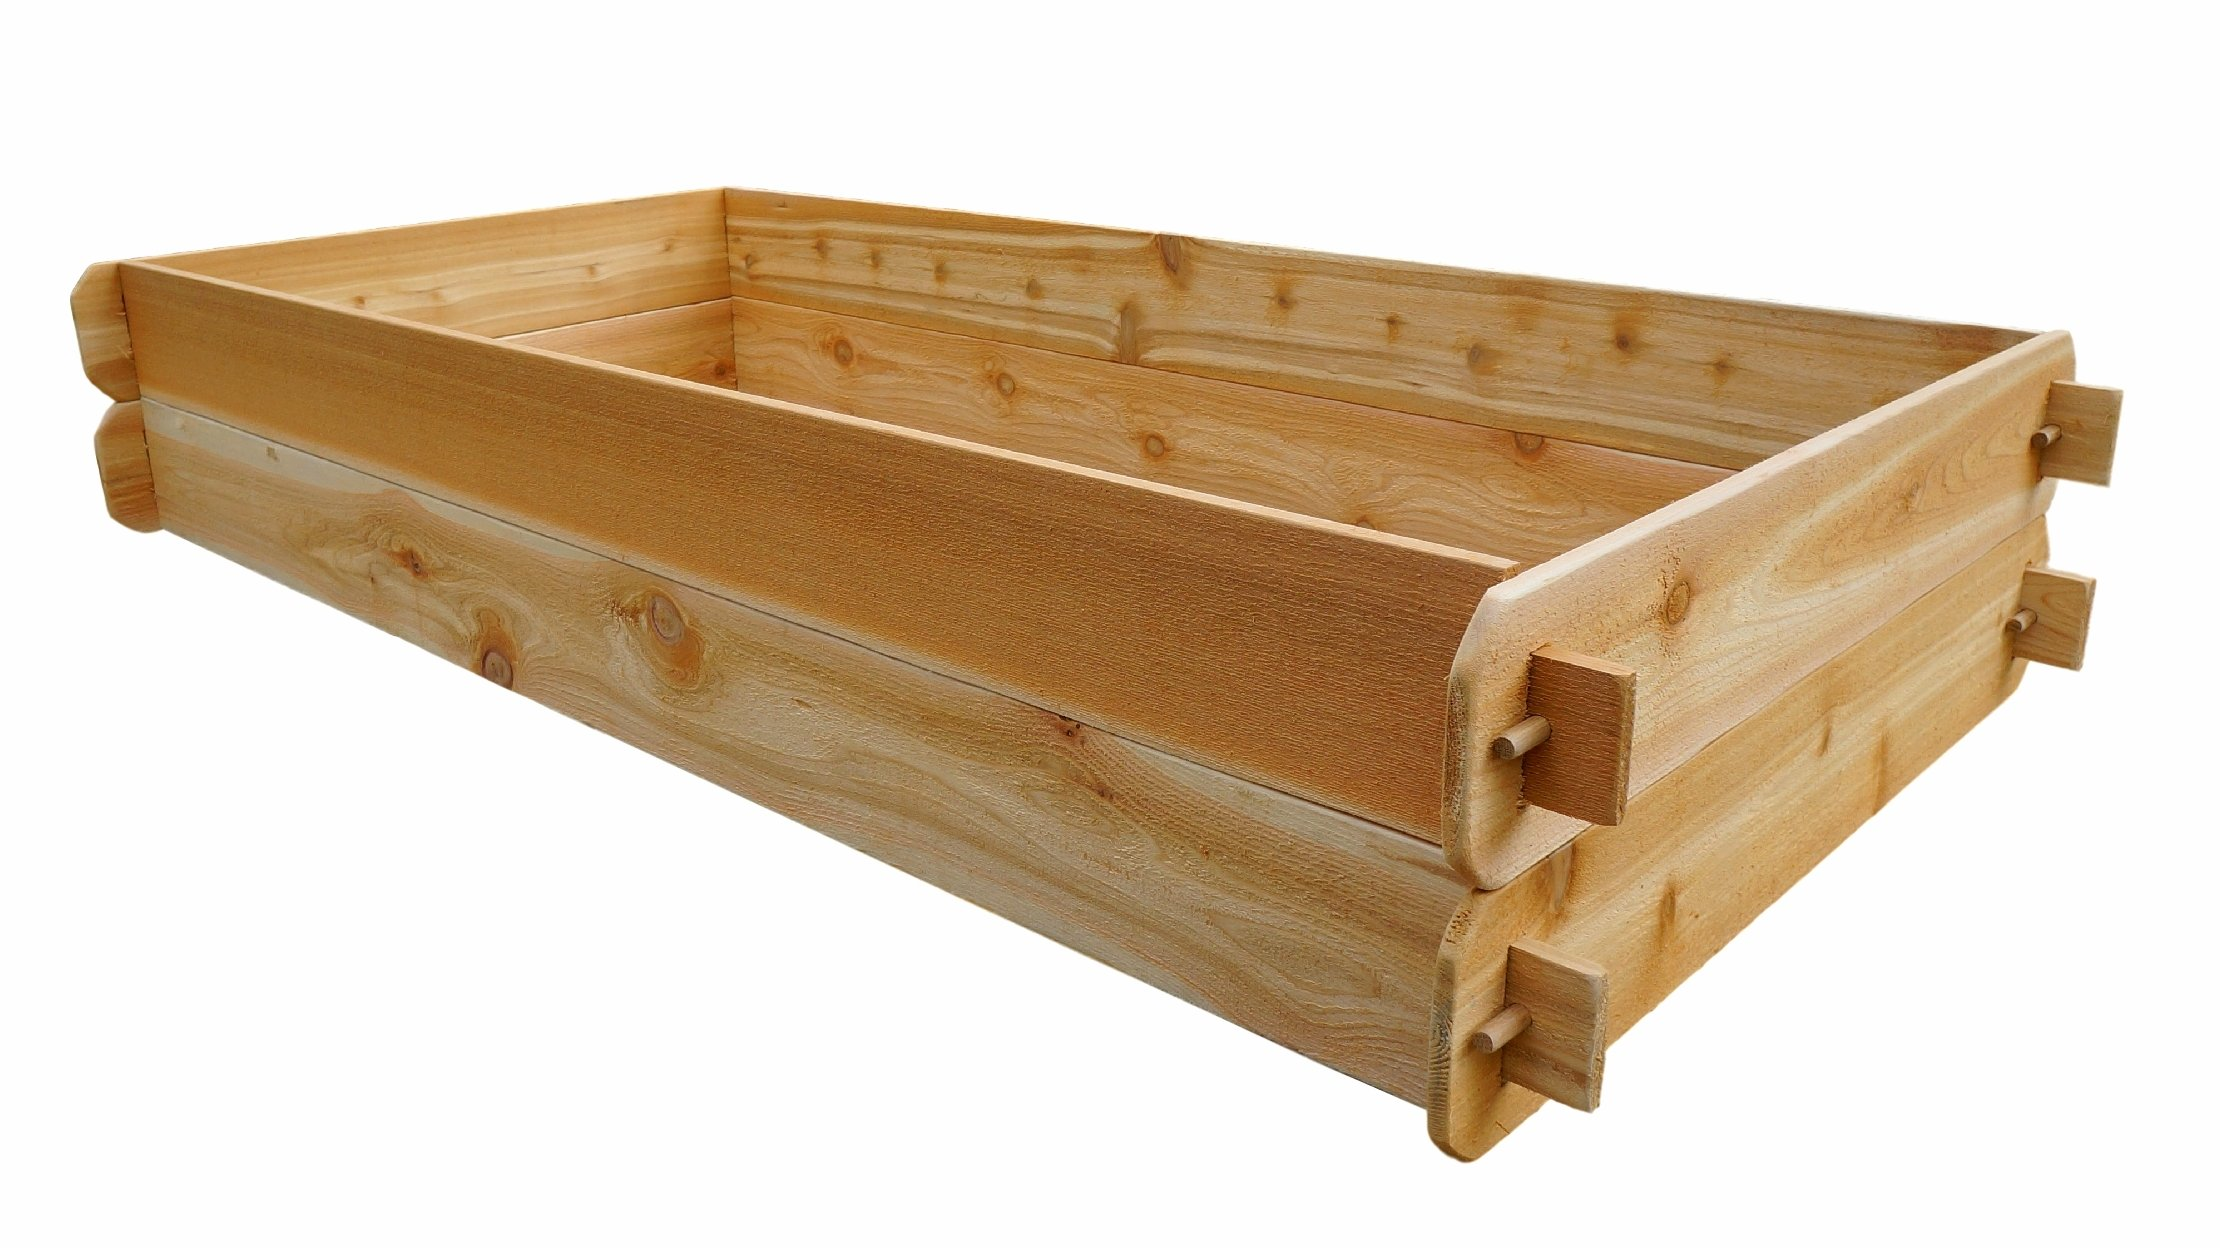 Timberlane Gardens Raised Bed Kit Double Deep, Western Red Cedar Mortise Tenon Joinery, 3' W x 6' L 2 Raised garden bed kit proudly made in homer glen, Illinois USA Constructed of select western red cedar Handcrafted mortise & tenon joinery